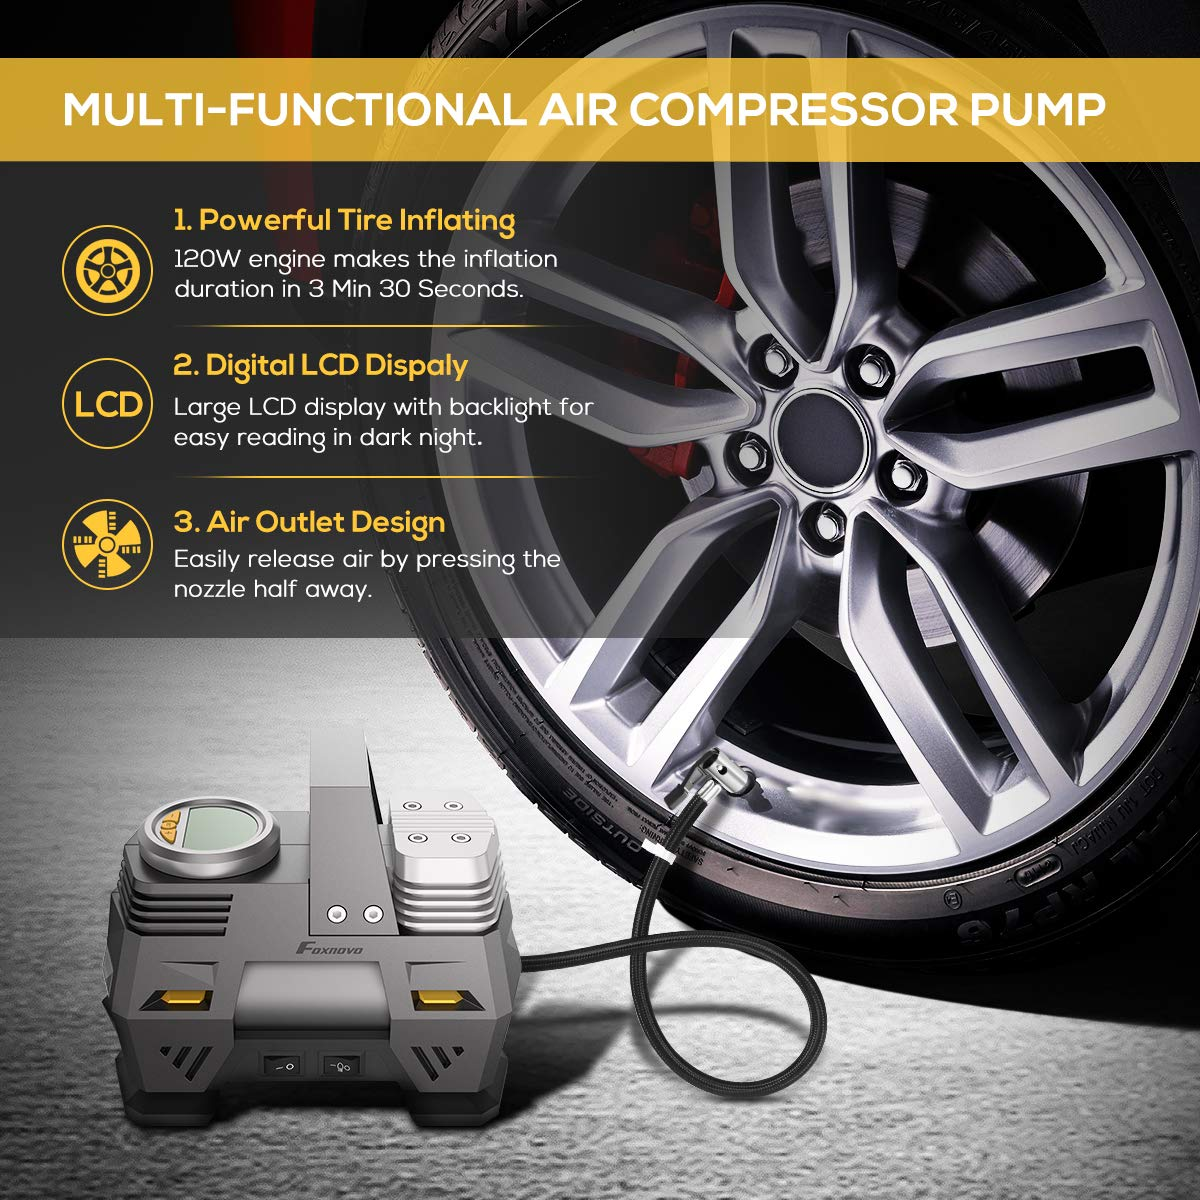 Foxnovo Air Compressor Pump, Digital Tire Inflator 150 PSI DC 12V Low Noise Tire Air Compressor Portable with Larger Air Flow 35L/Min, LED Light, Overheat Protection, Extra Nozzle Adaptors and Fuse by Foxnovo (Image #4)